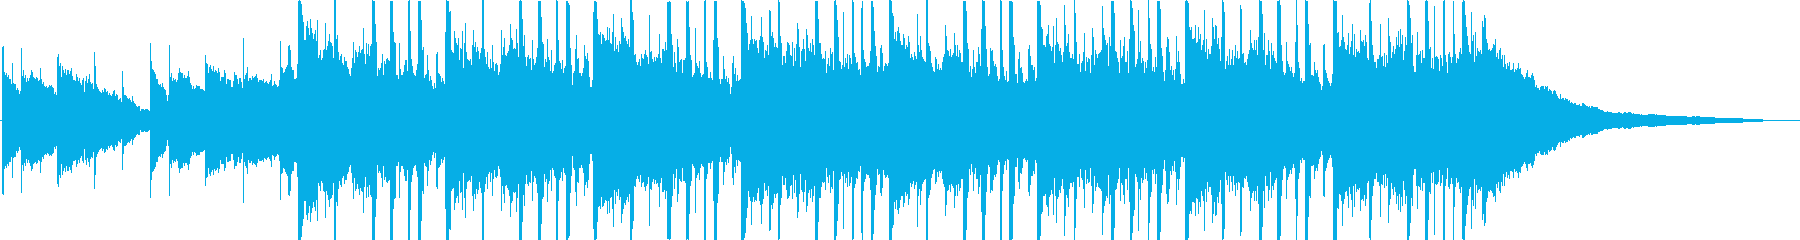 Motivating and in...'s reproduced waveform